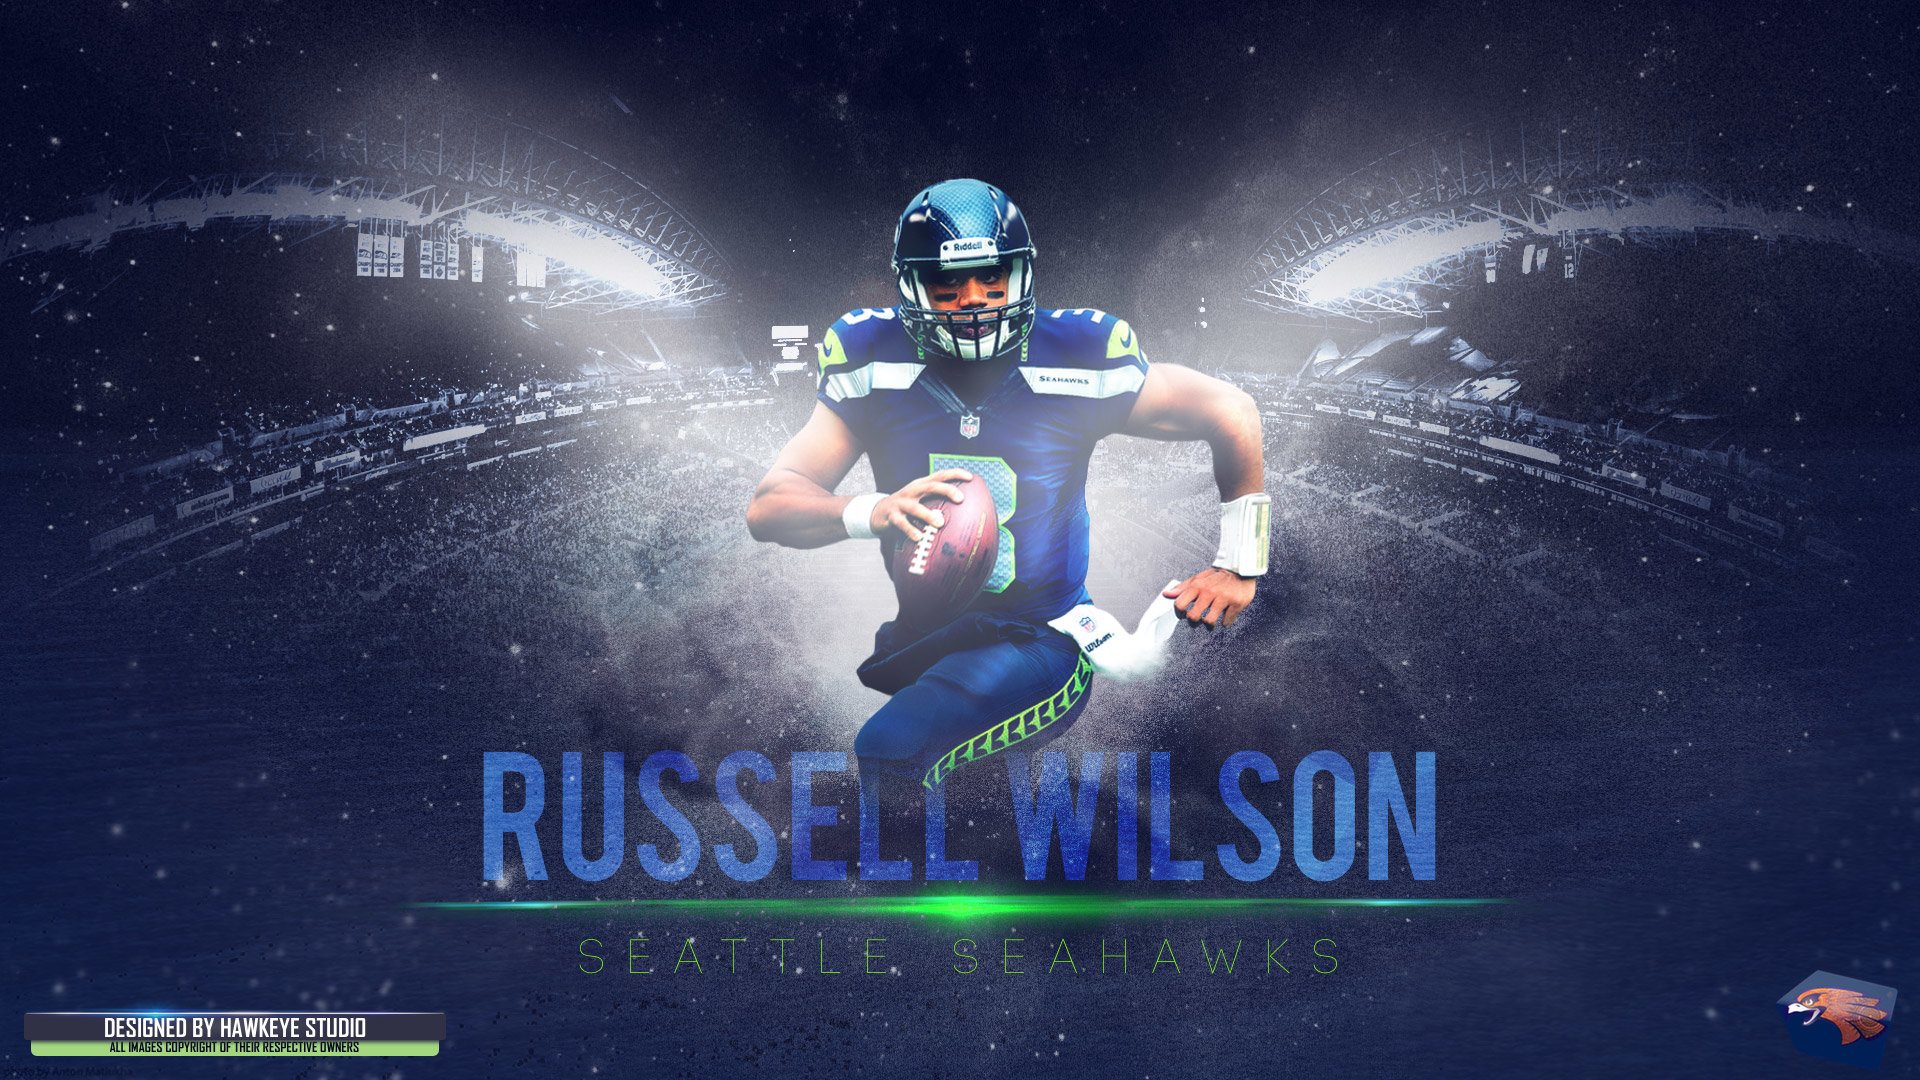 best seattle seahawks wallpaper id347942 for high resolution full hd desktop